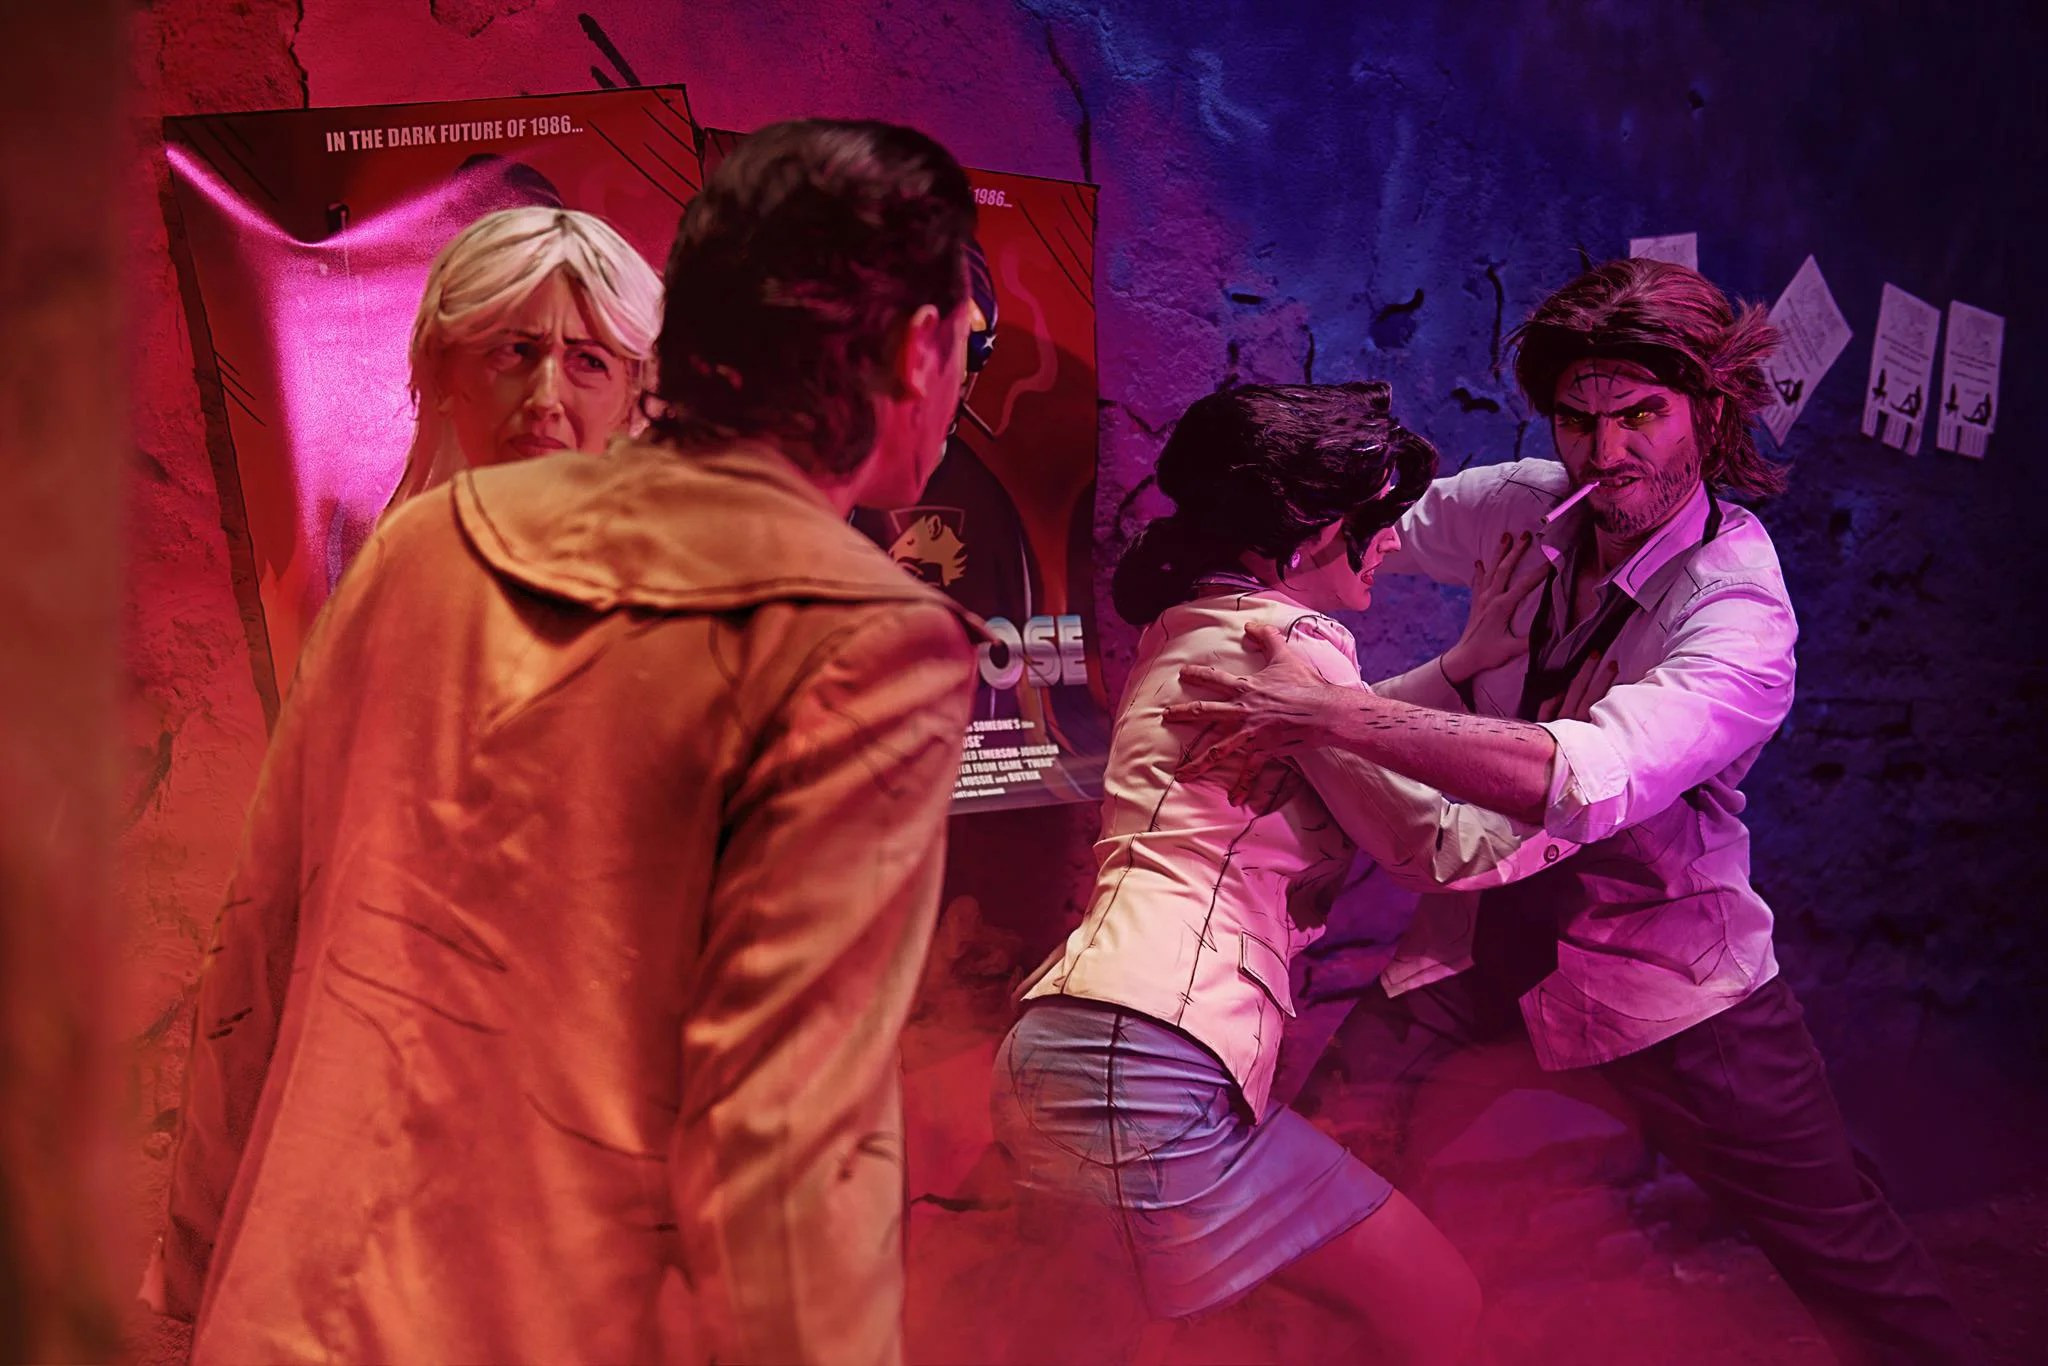 Dupla surpreende com cosplays incríveis de The Wolf Among Us